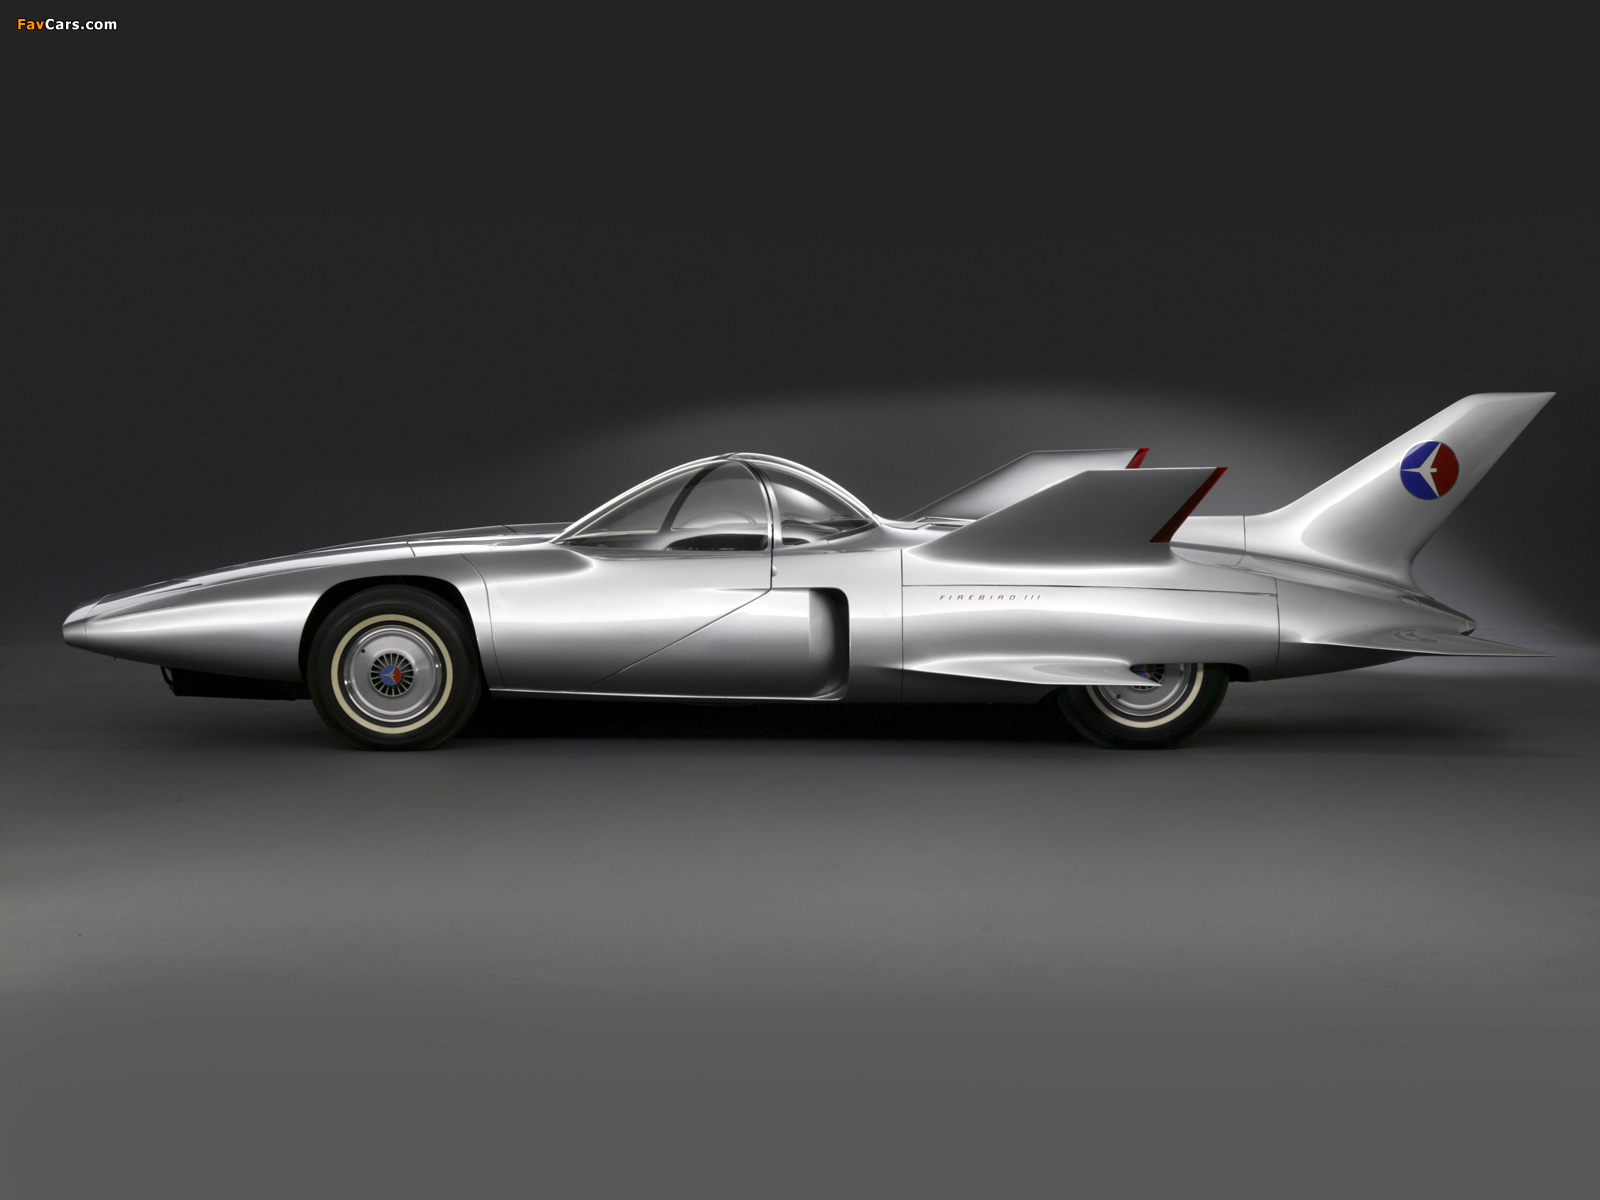 Images of gm firebird iii concept car 1958 1600x1200 for M and g motors